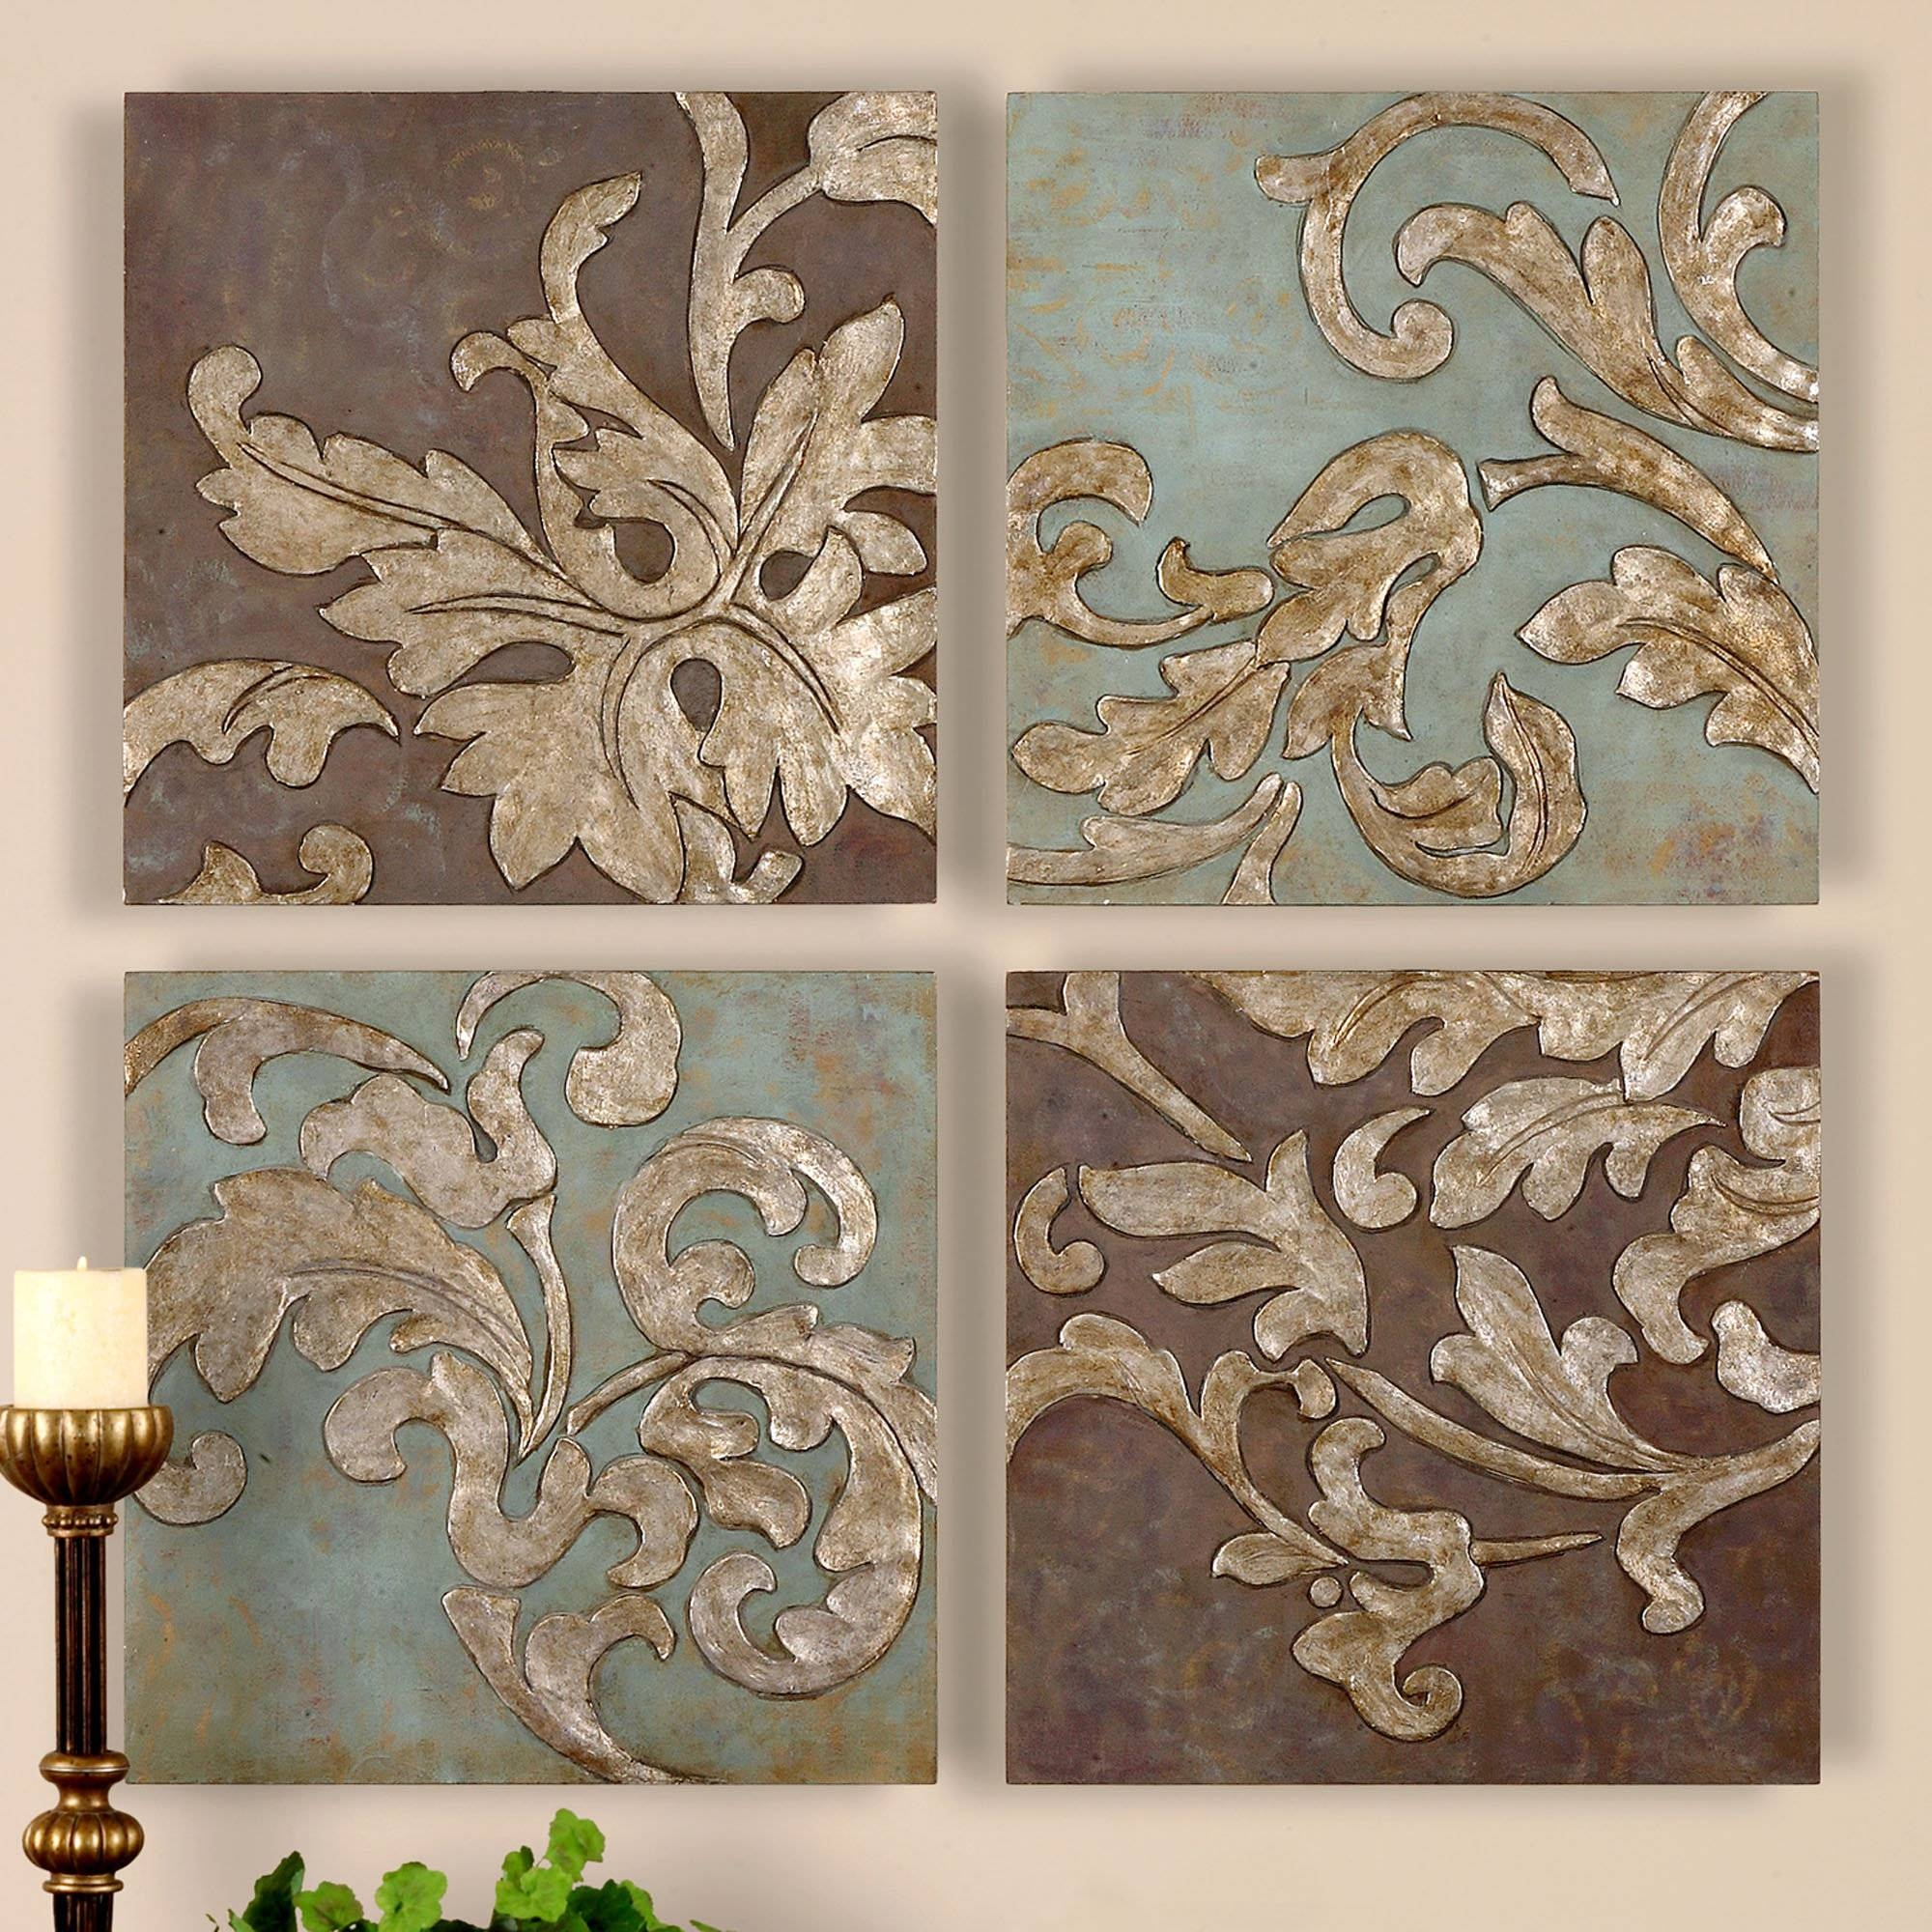 Impressive Antique Wall Art 108 Vintage Outdoor Wall Art Metal With Most Up To Date Vintage Metal Wall Art (View 7 of 20)